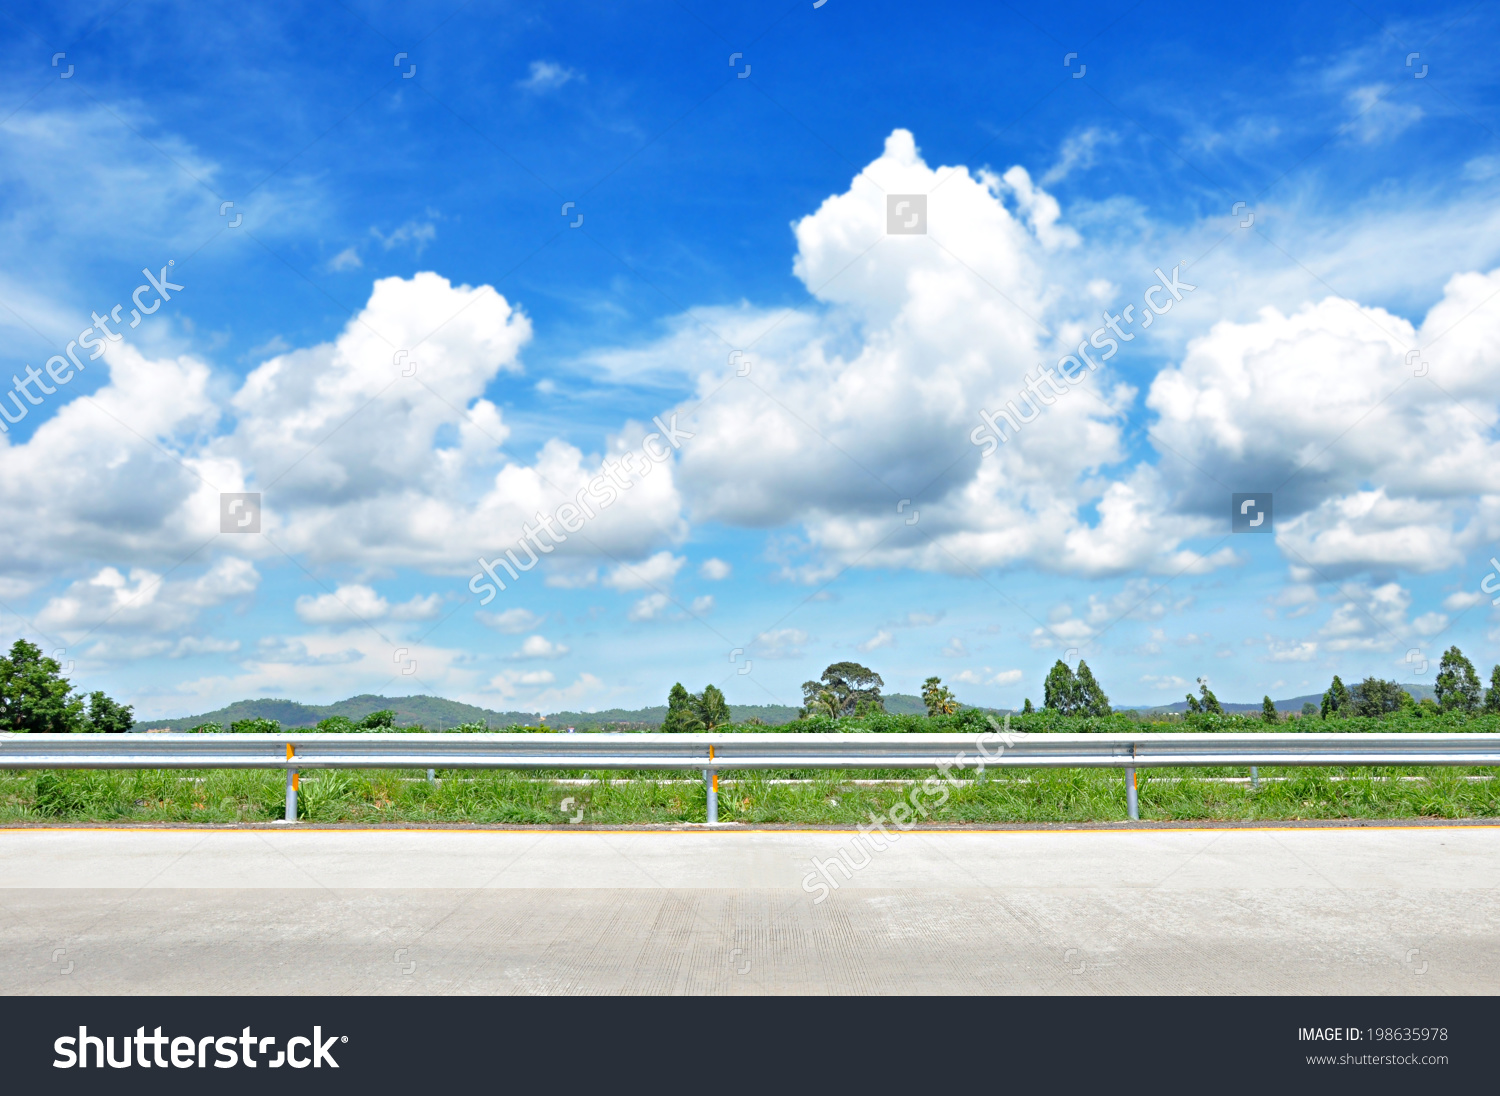 Empty road side view clipart.